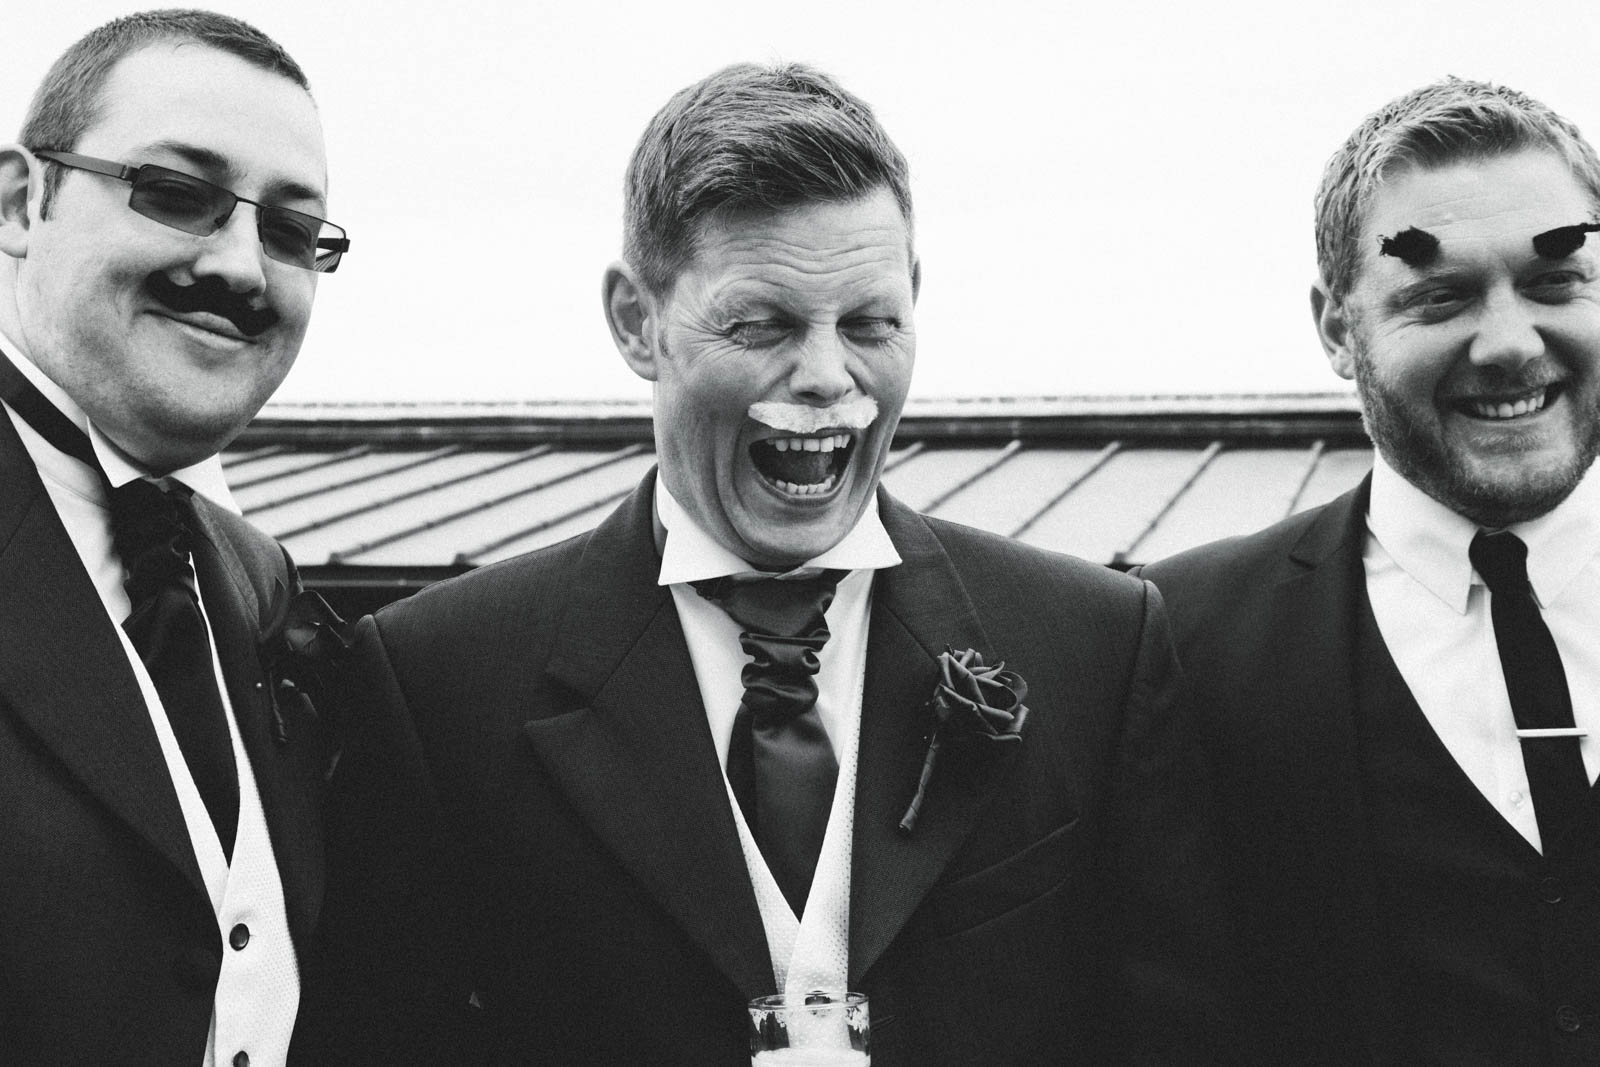 Funny Wedding photo of groomsmen messing around with moustaches